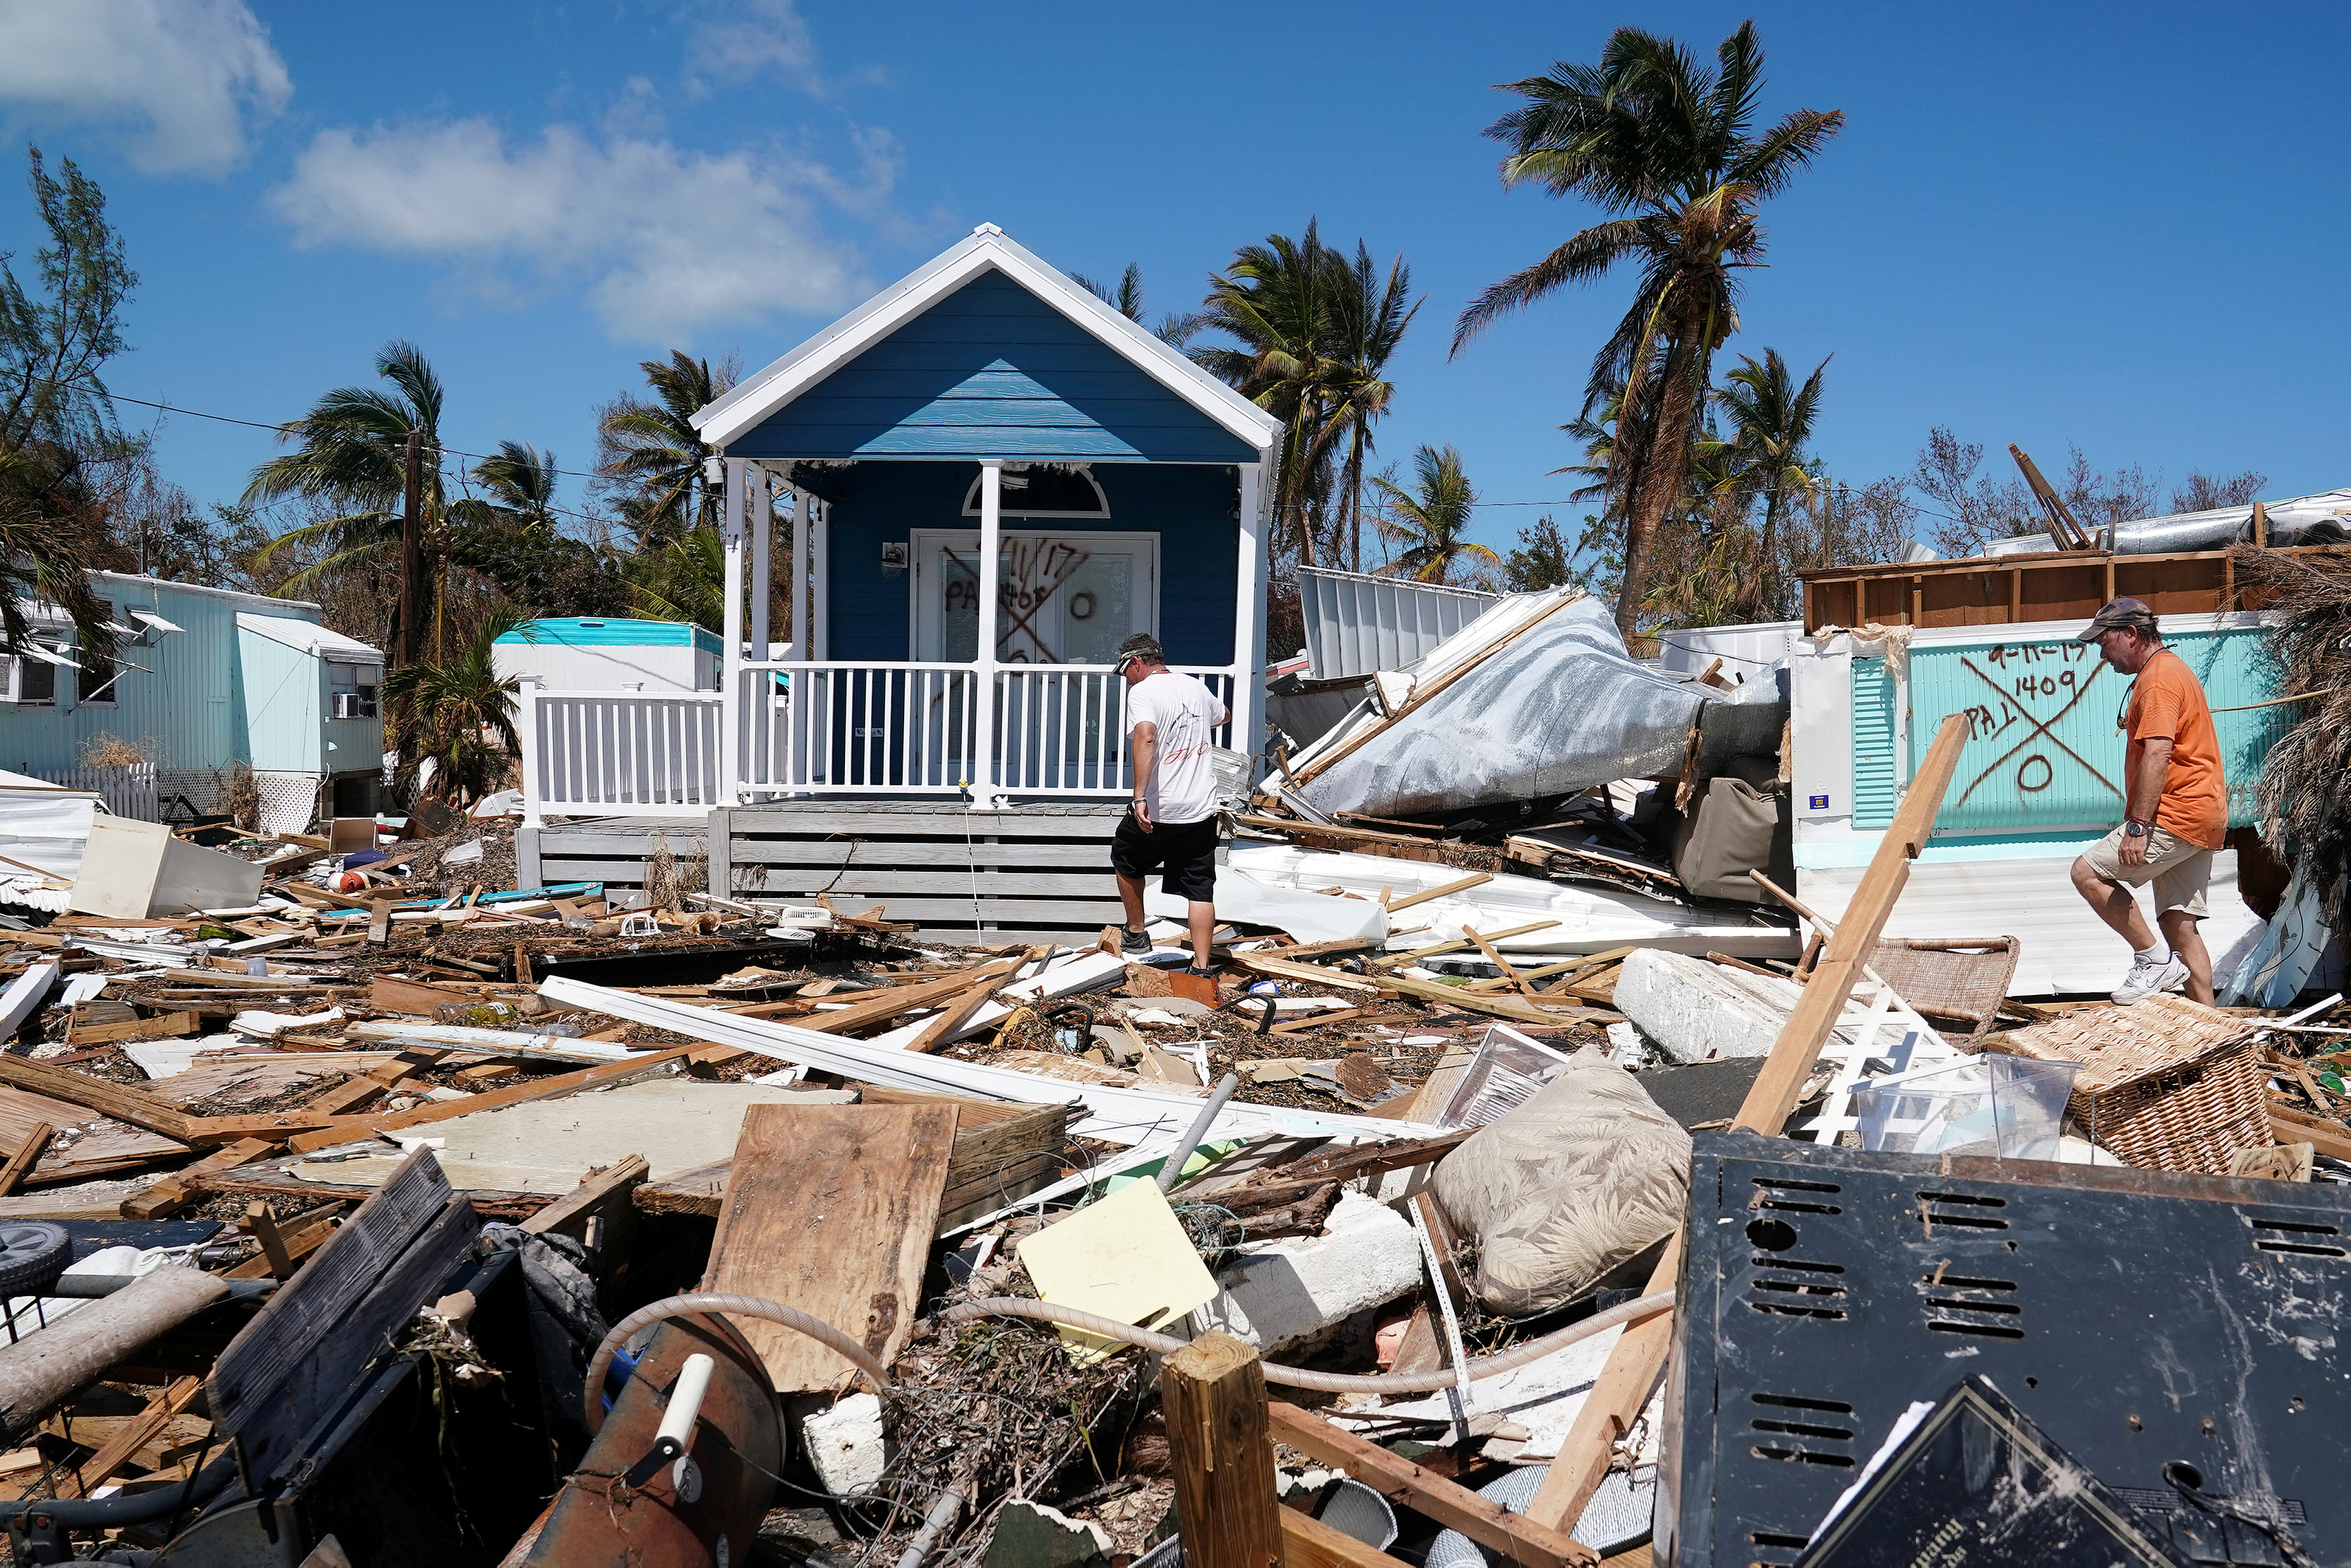 Residents walk though a debris field of former houses following Hurricane Irma in Islamorada, Florida, U.S., September 15, 2017. REUTERS/Carlo Allegri